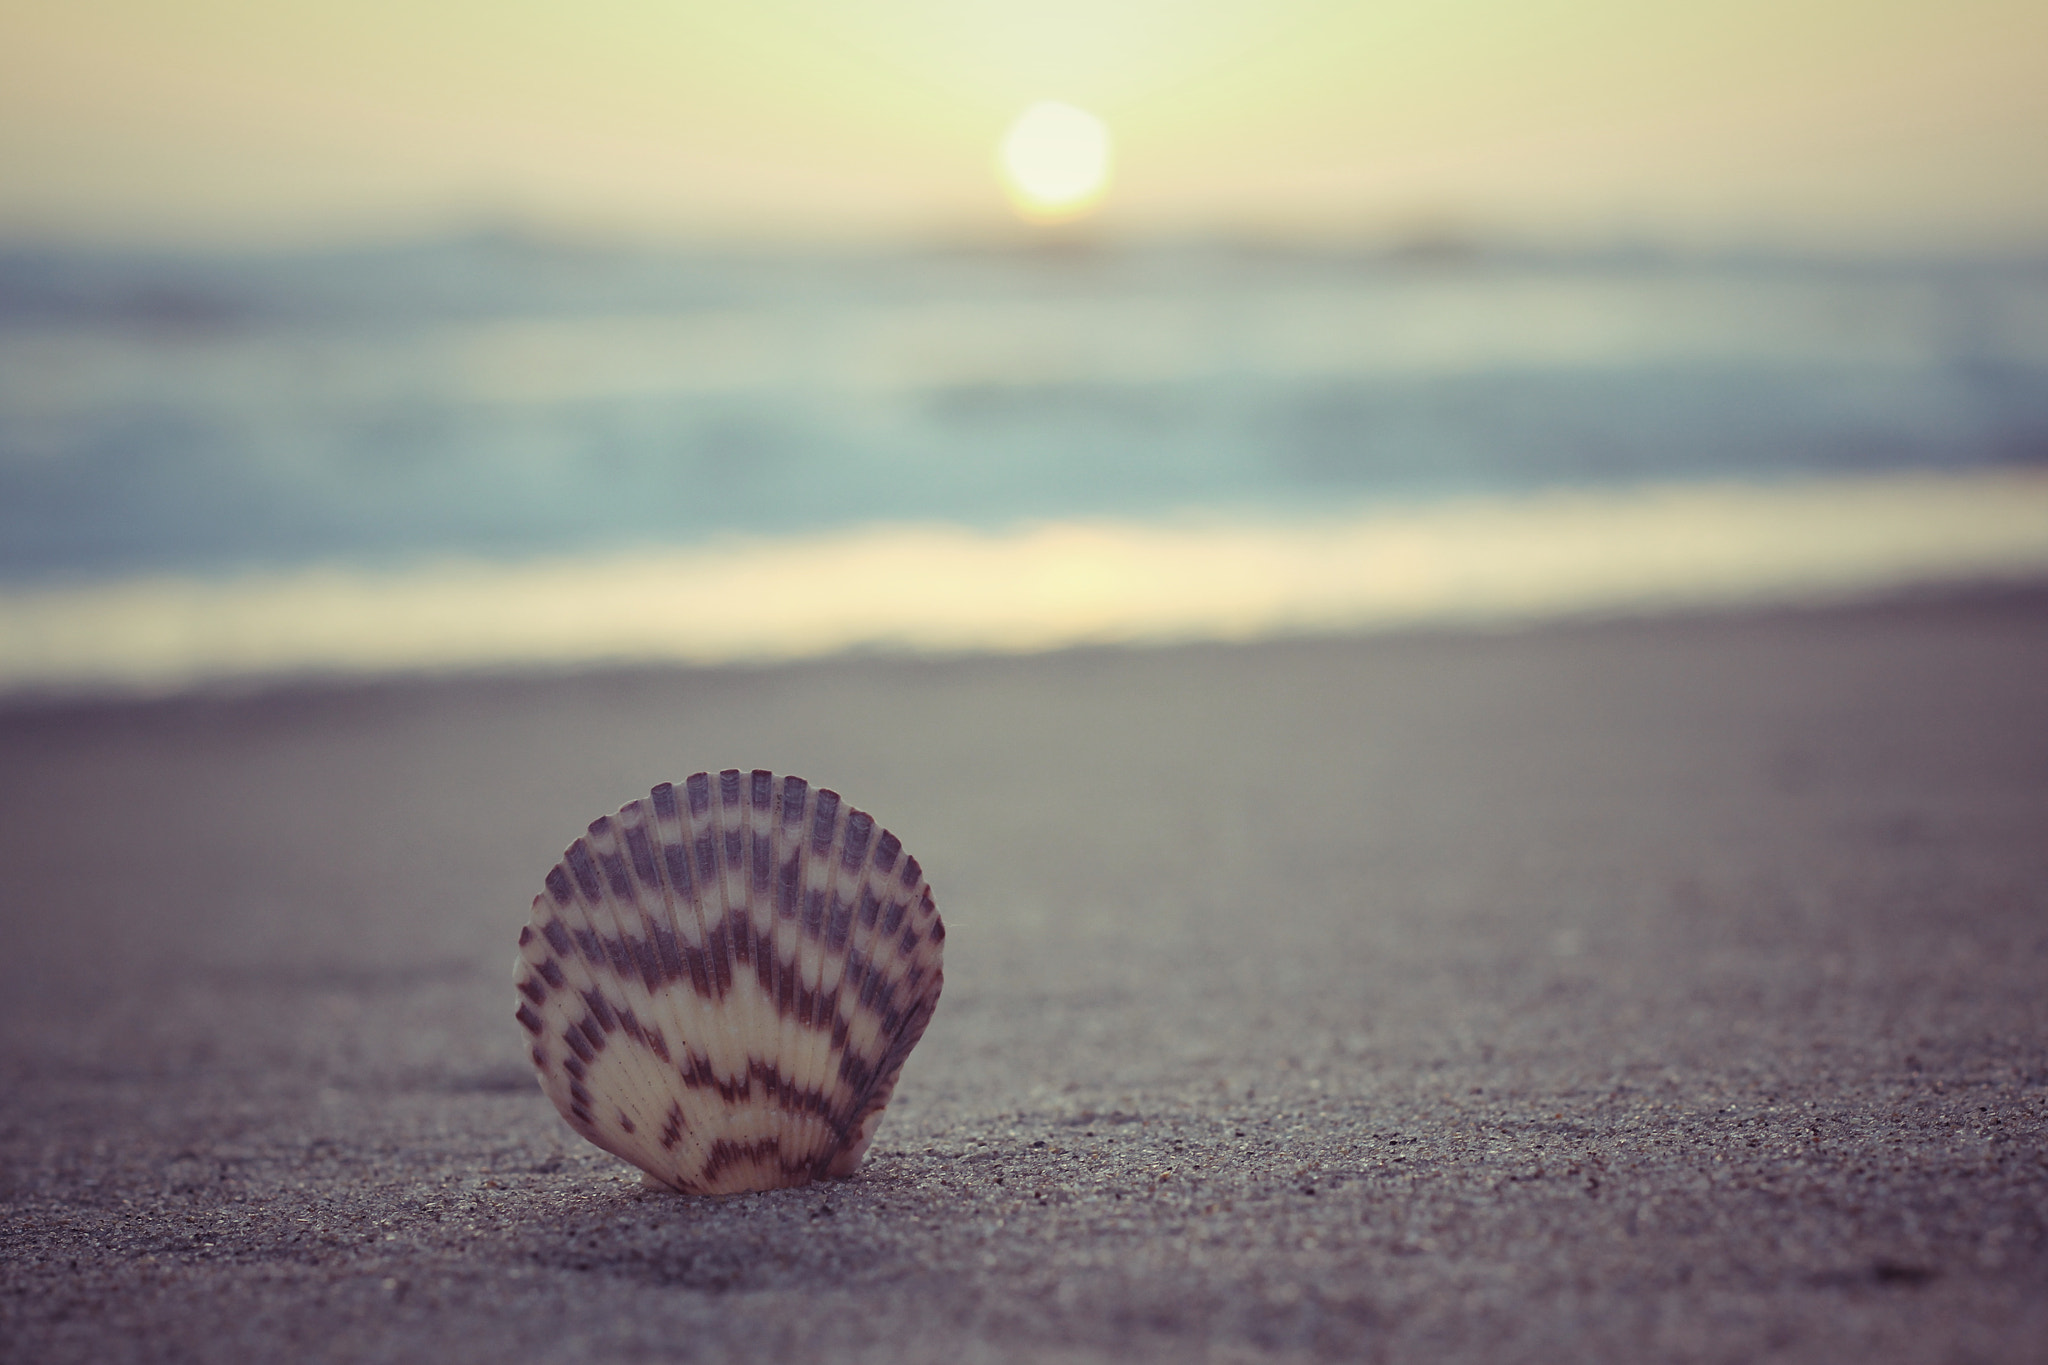 Photograph Shell by Courtney D on 500px